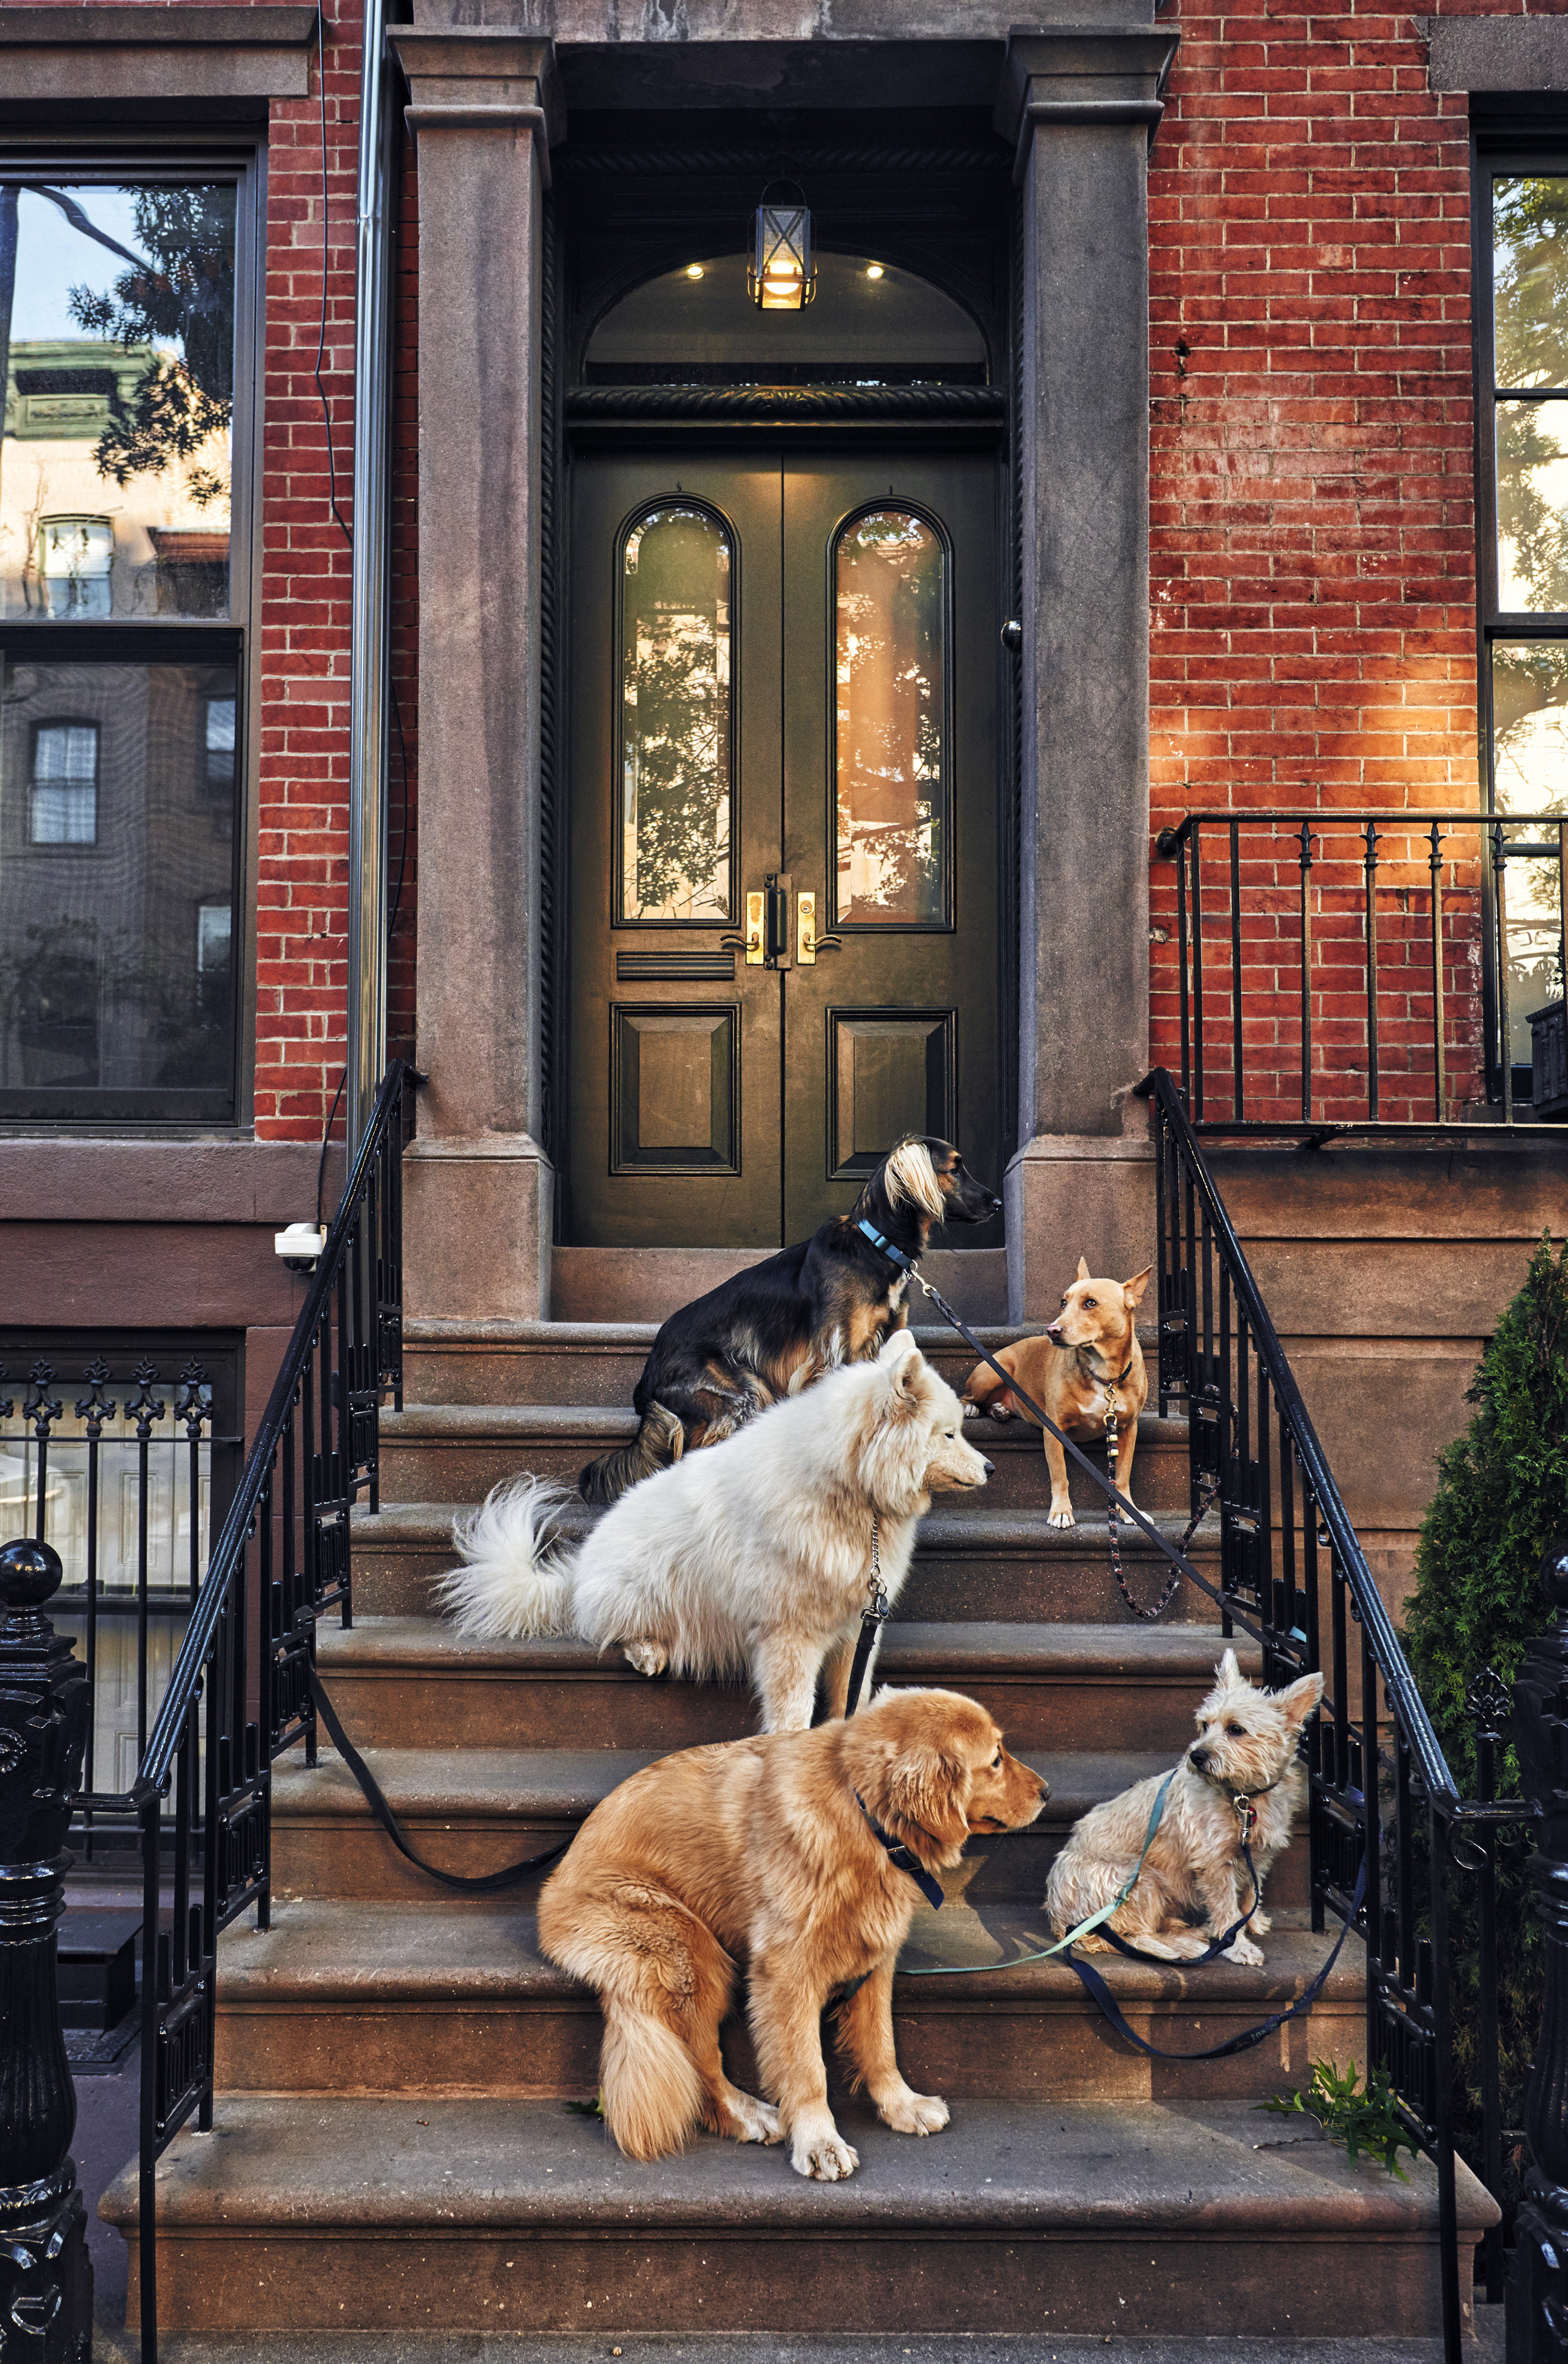 dogs sitting on a stoop.